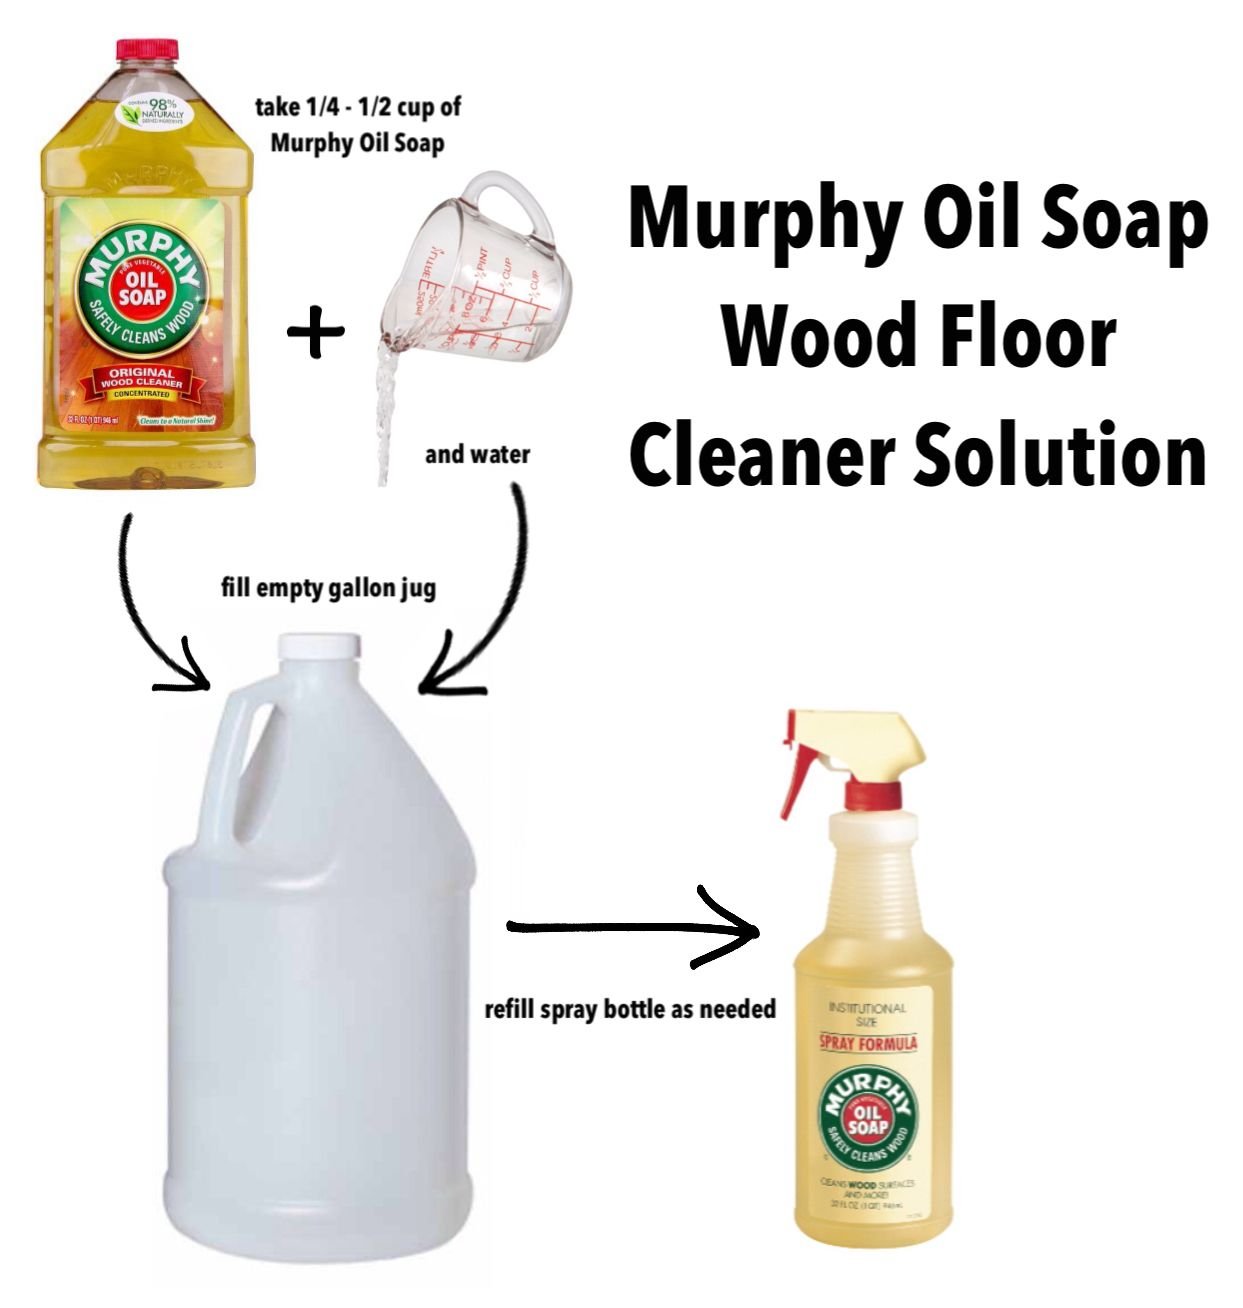 Cleaning hardwood floors with murphy oil soap -  Murphy Oil Soap Wood Floor Cleaner Solution